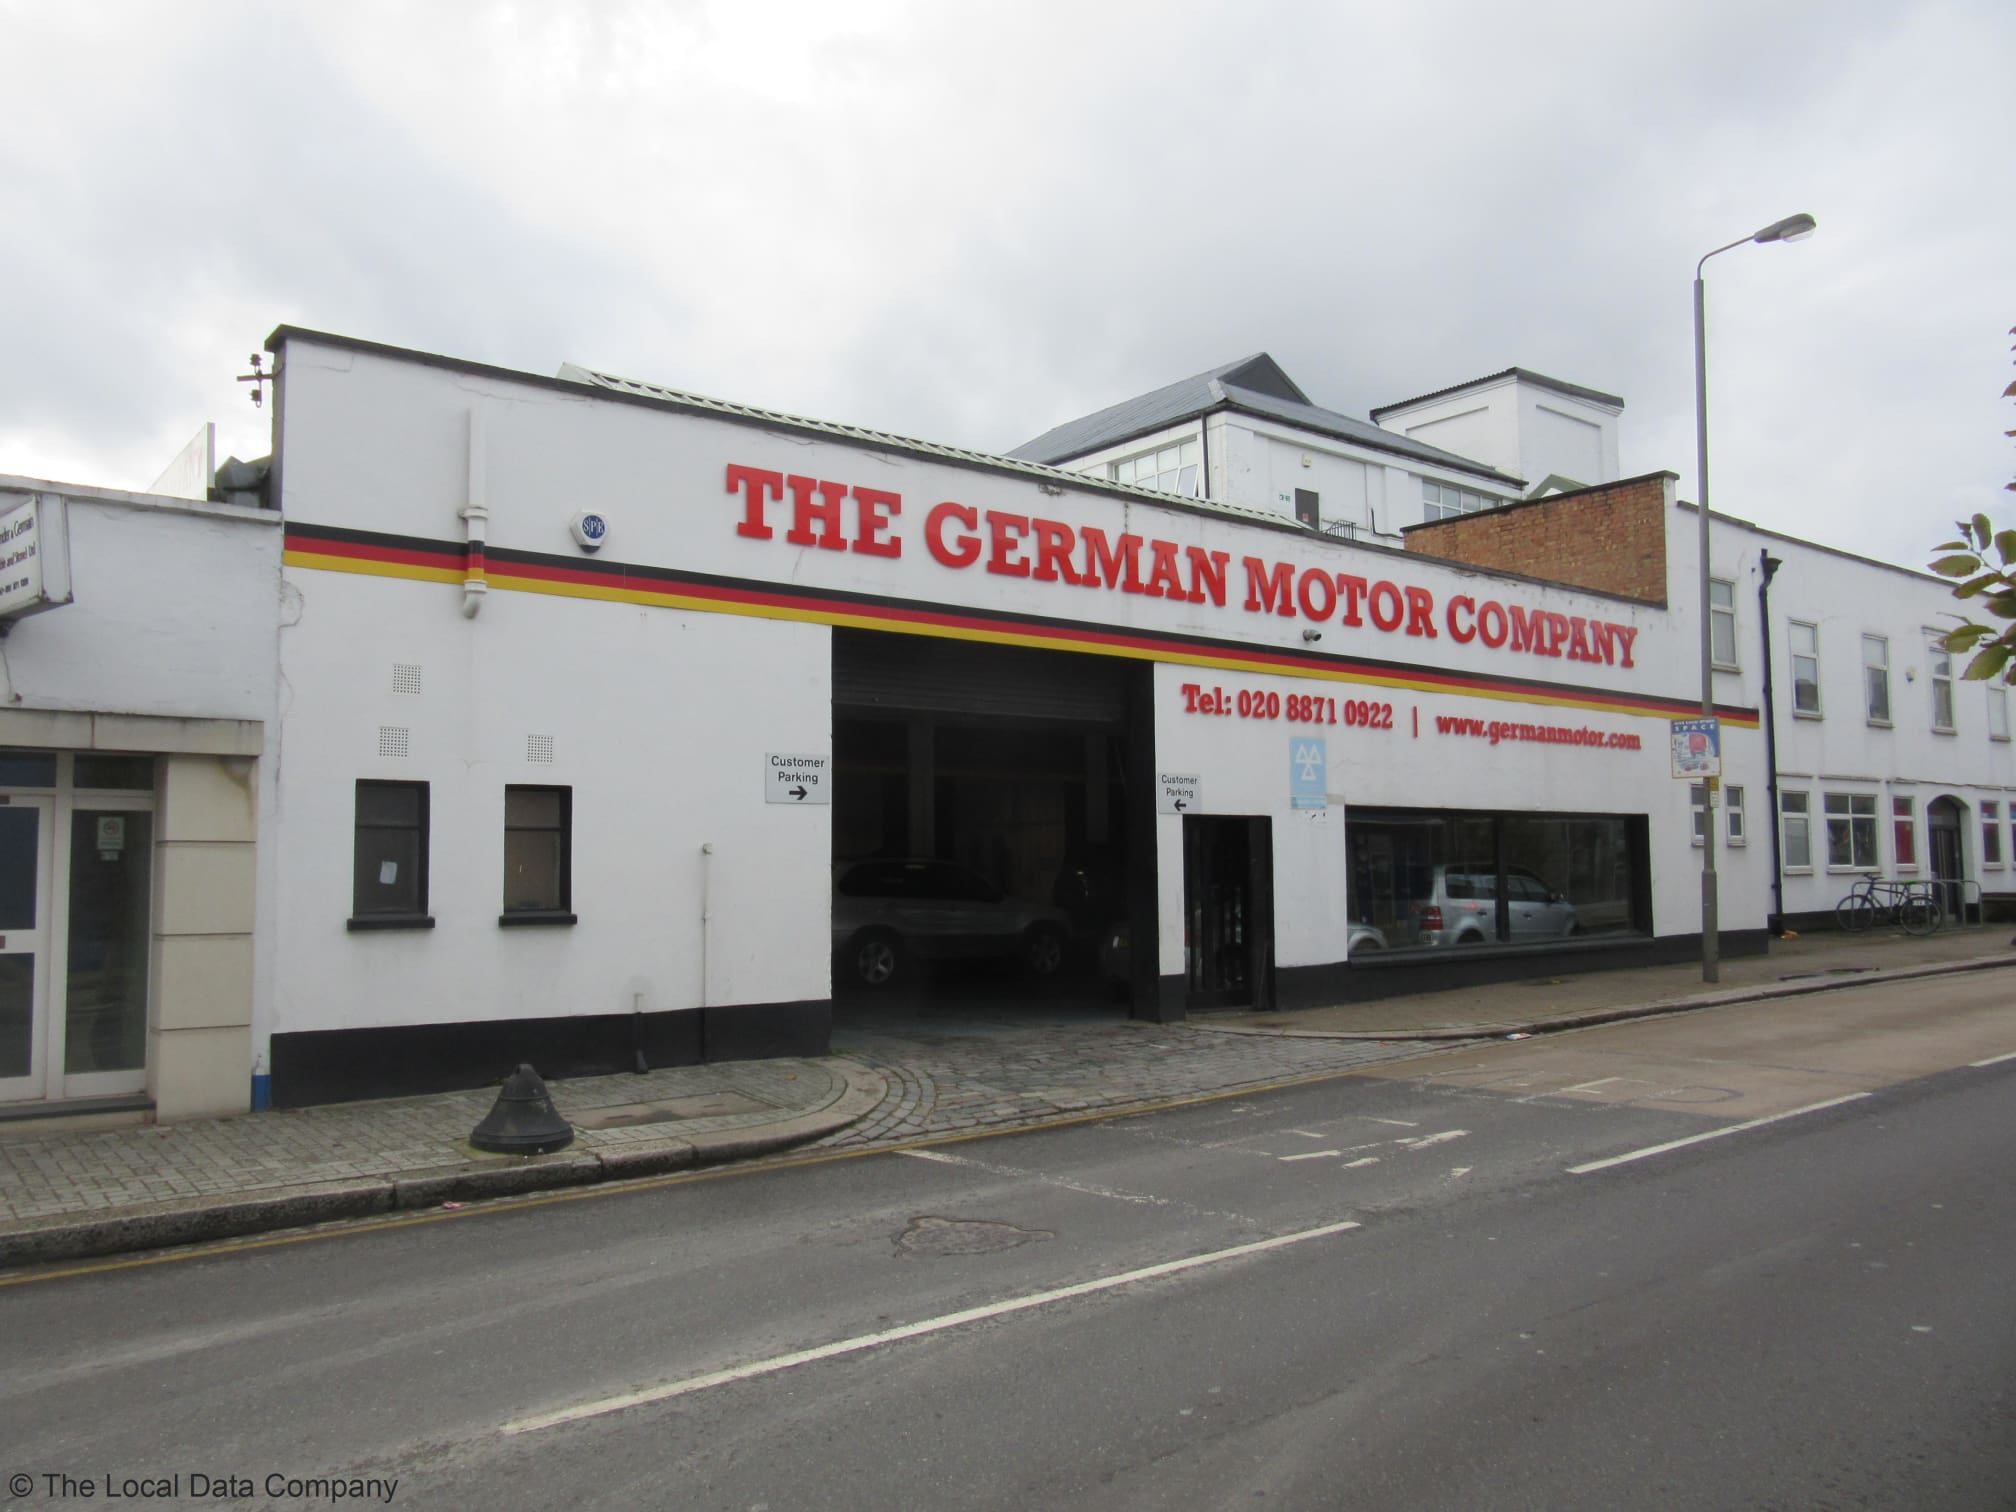 The German Motor Co